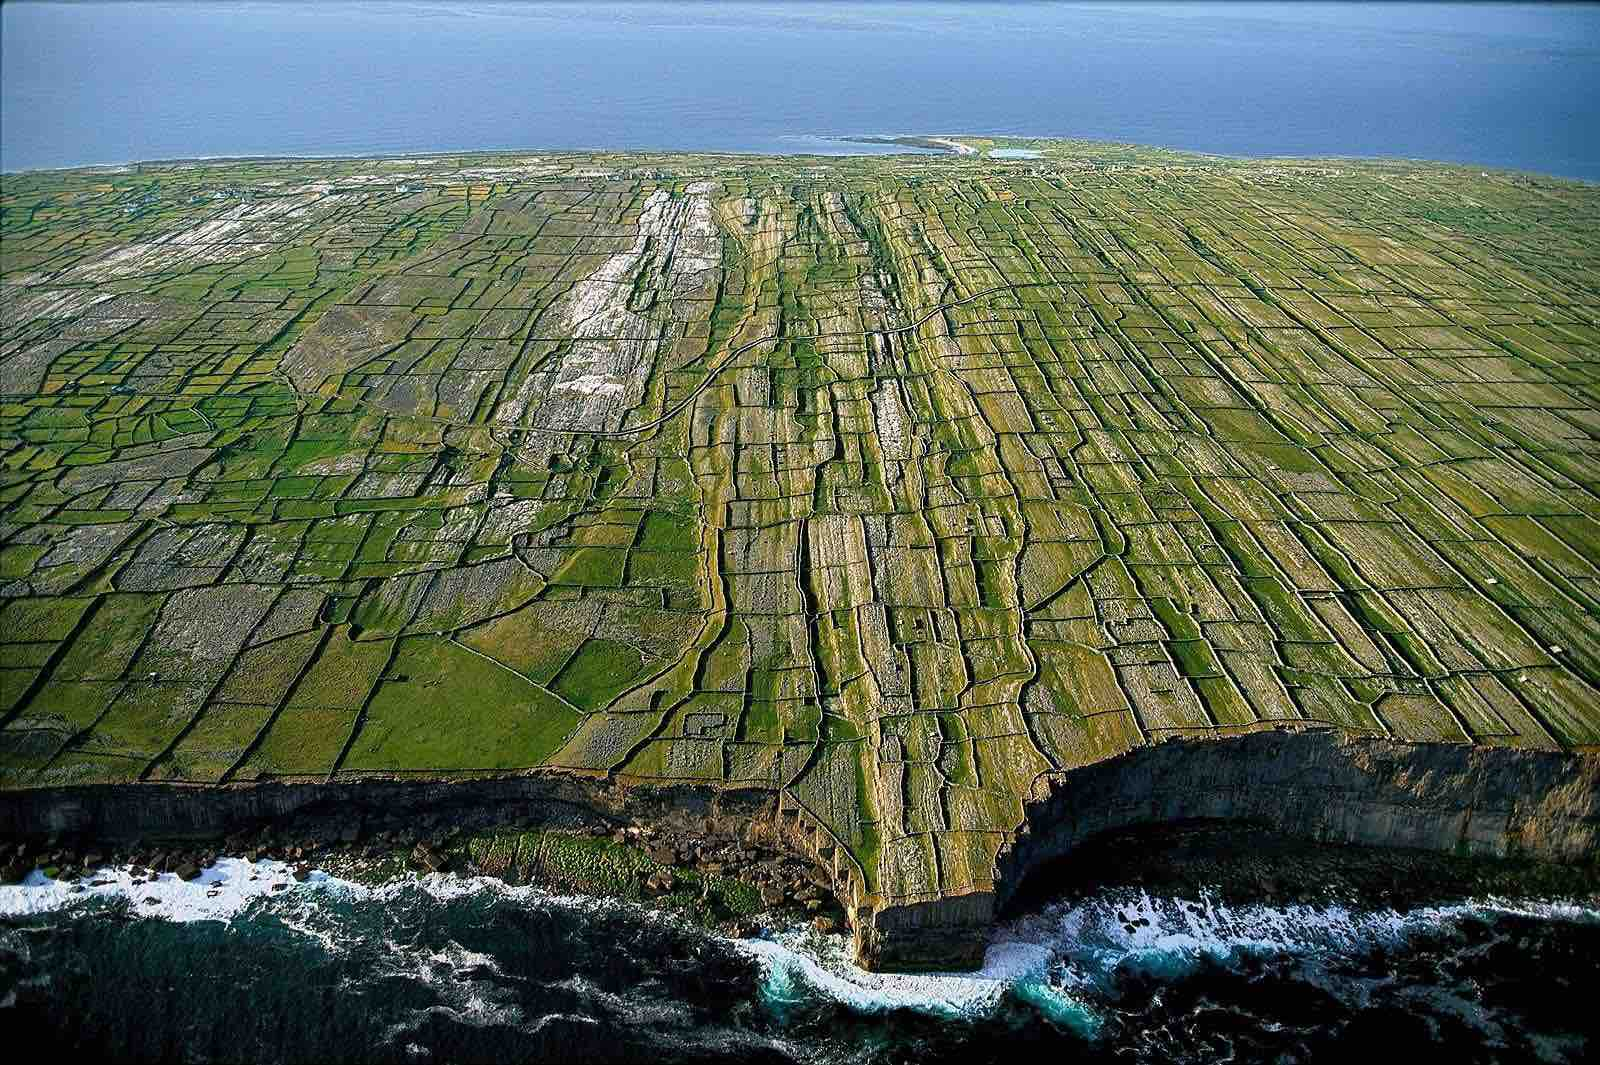 Aran Islands - AspirantSG